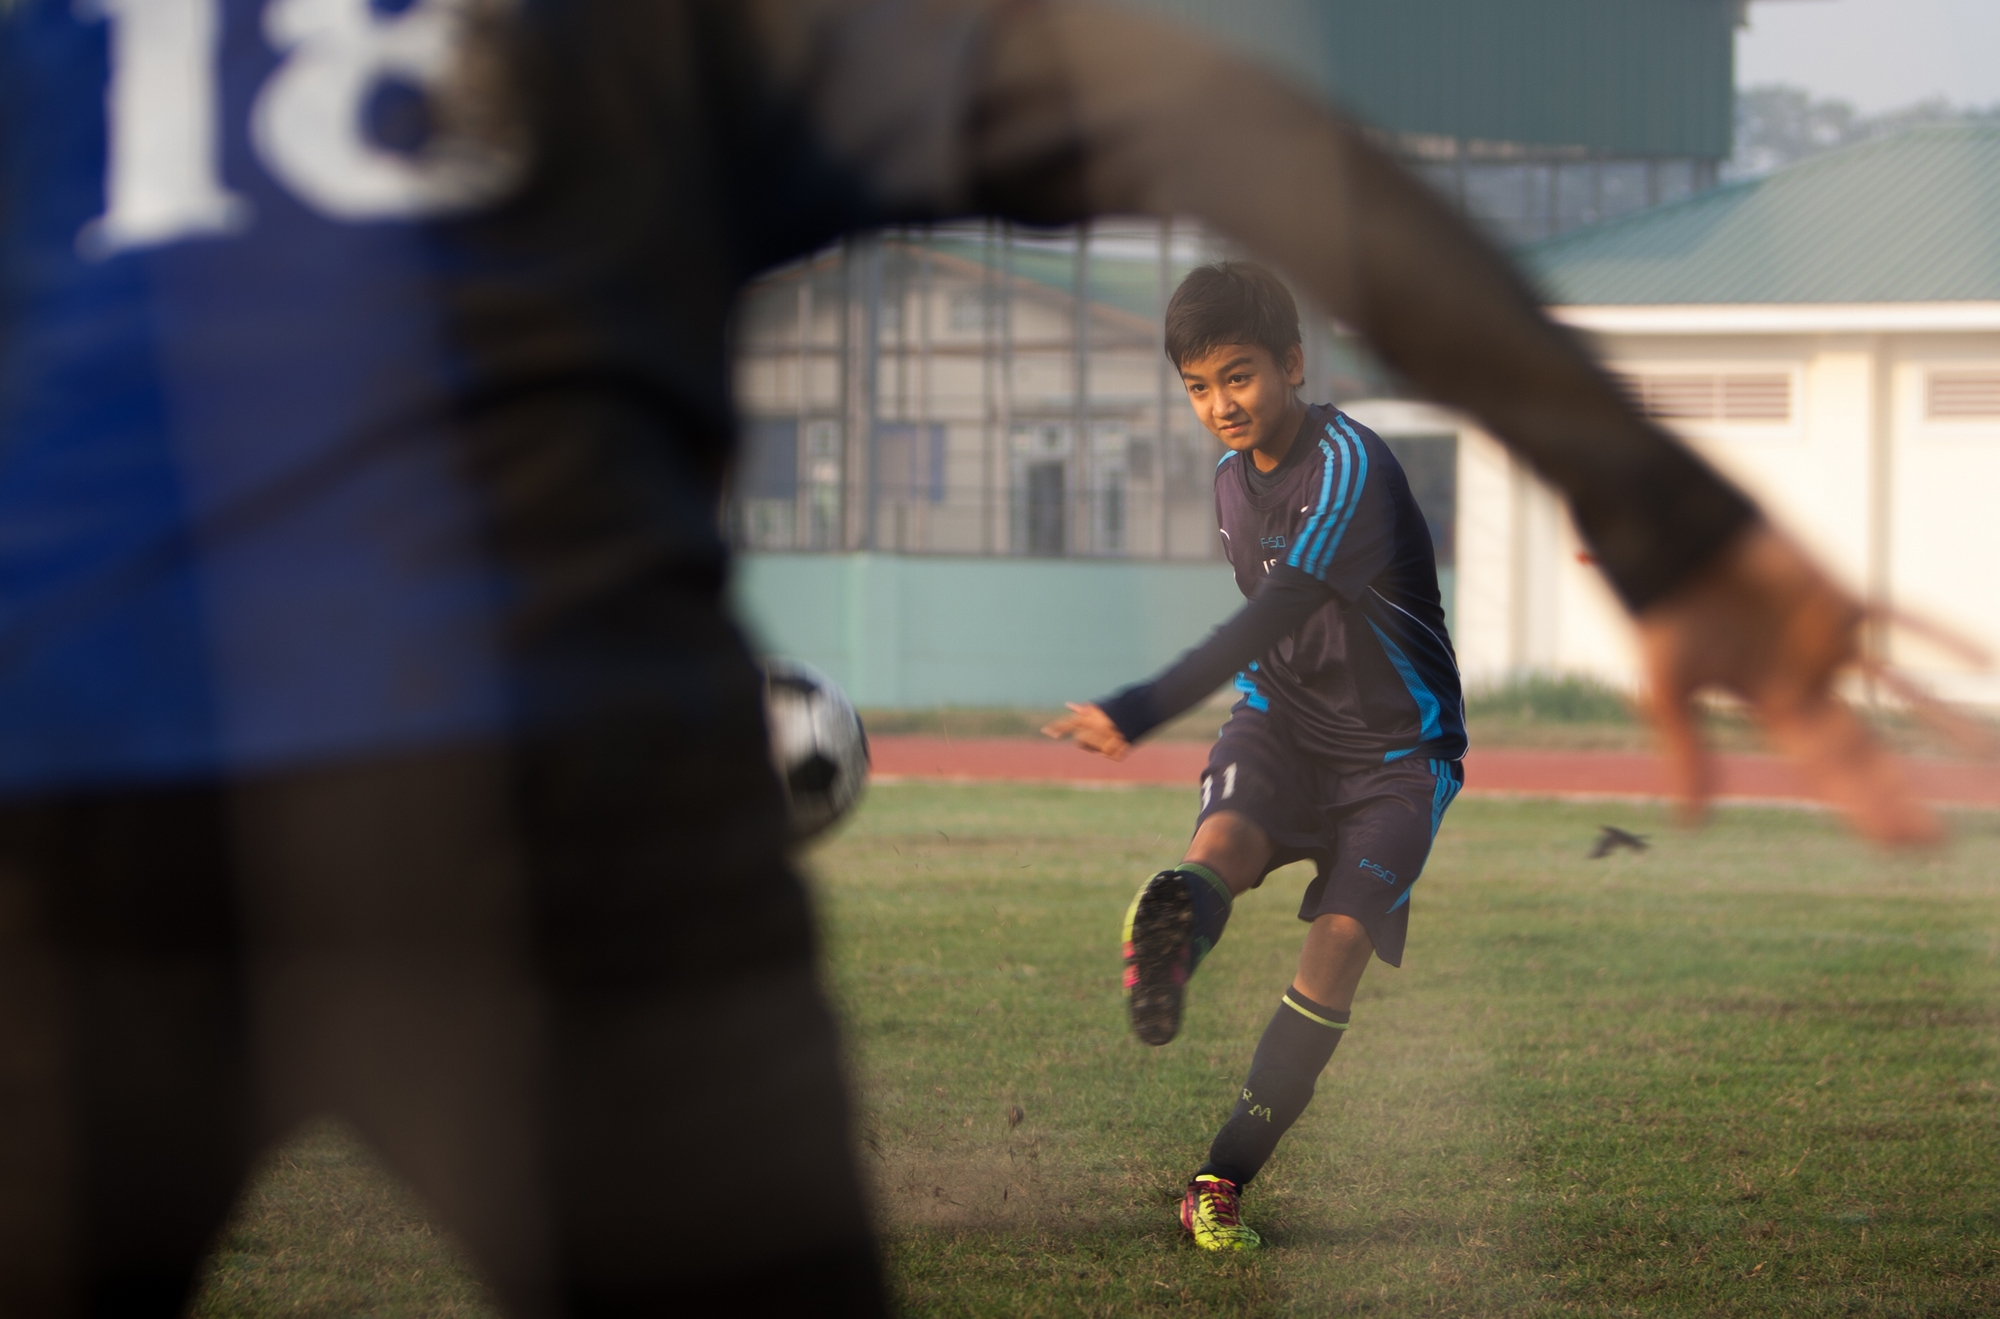 A day in the life of a young female footballer in Myanmar in PHOTOS